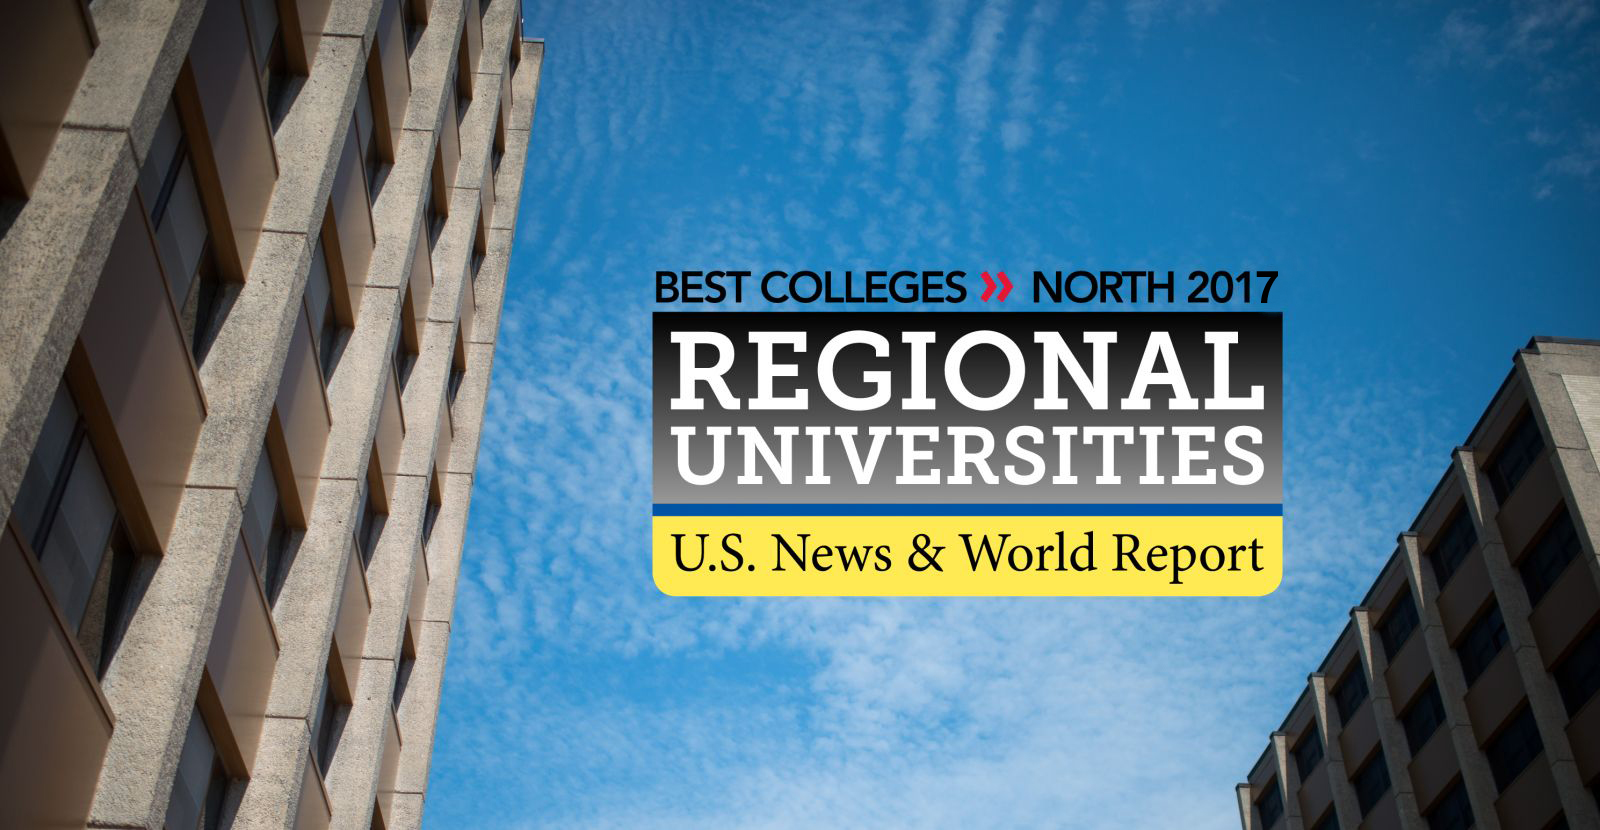 U.S. News & World Report ranks SUNY Plattsburgh among the best colleges in northern regional colleges for 2017